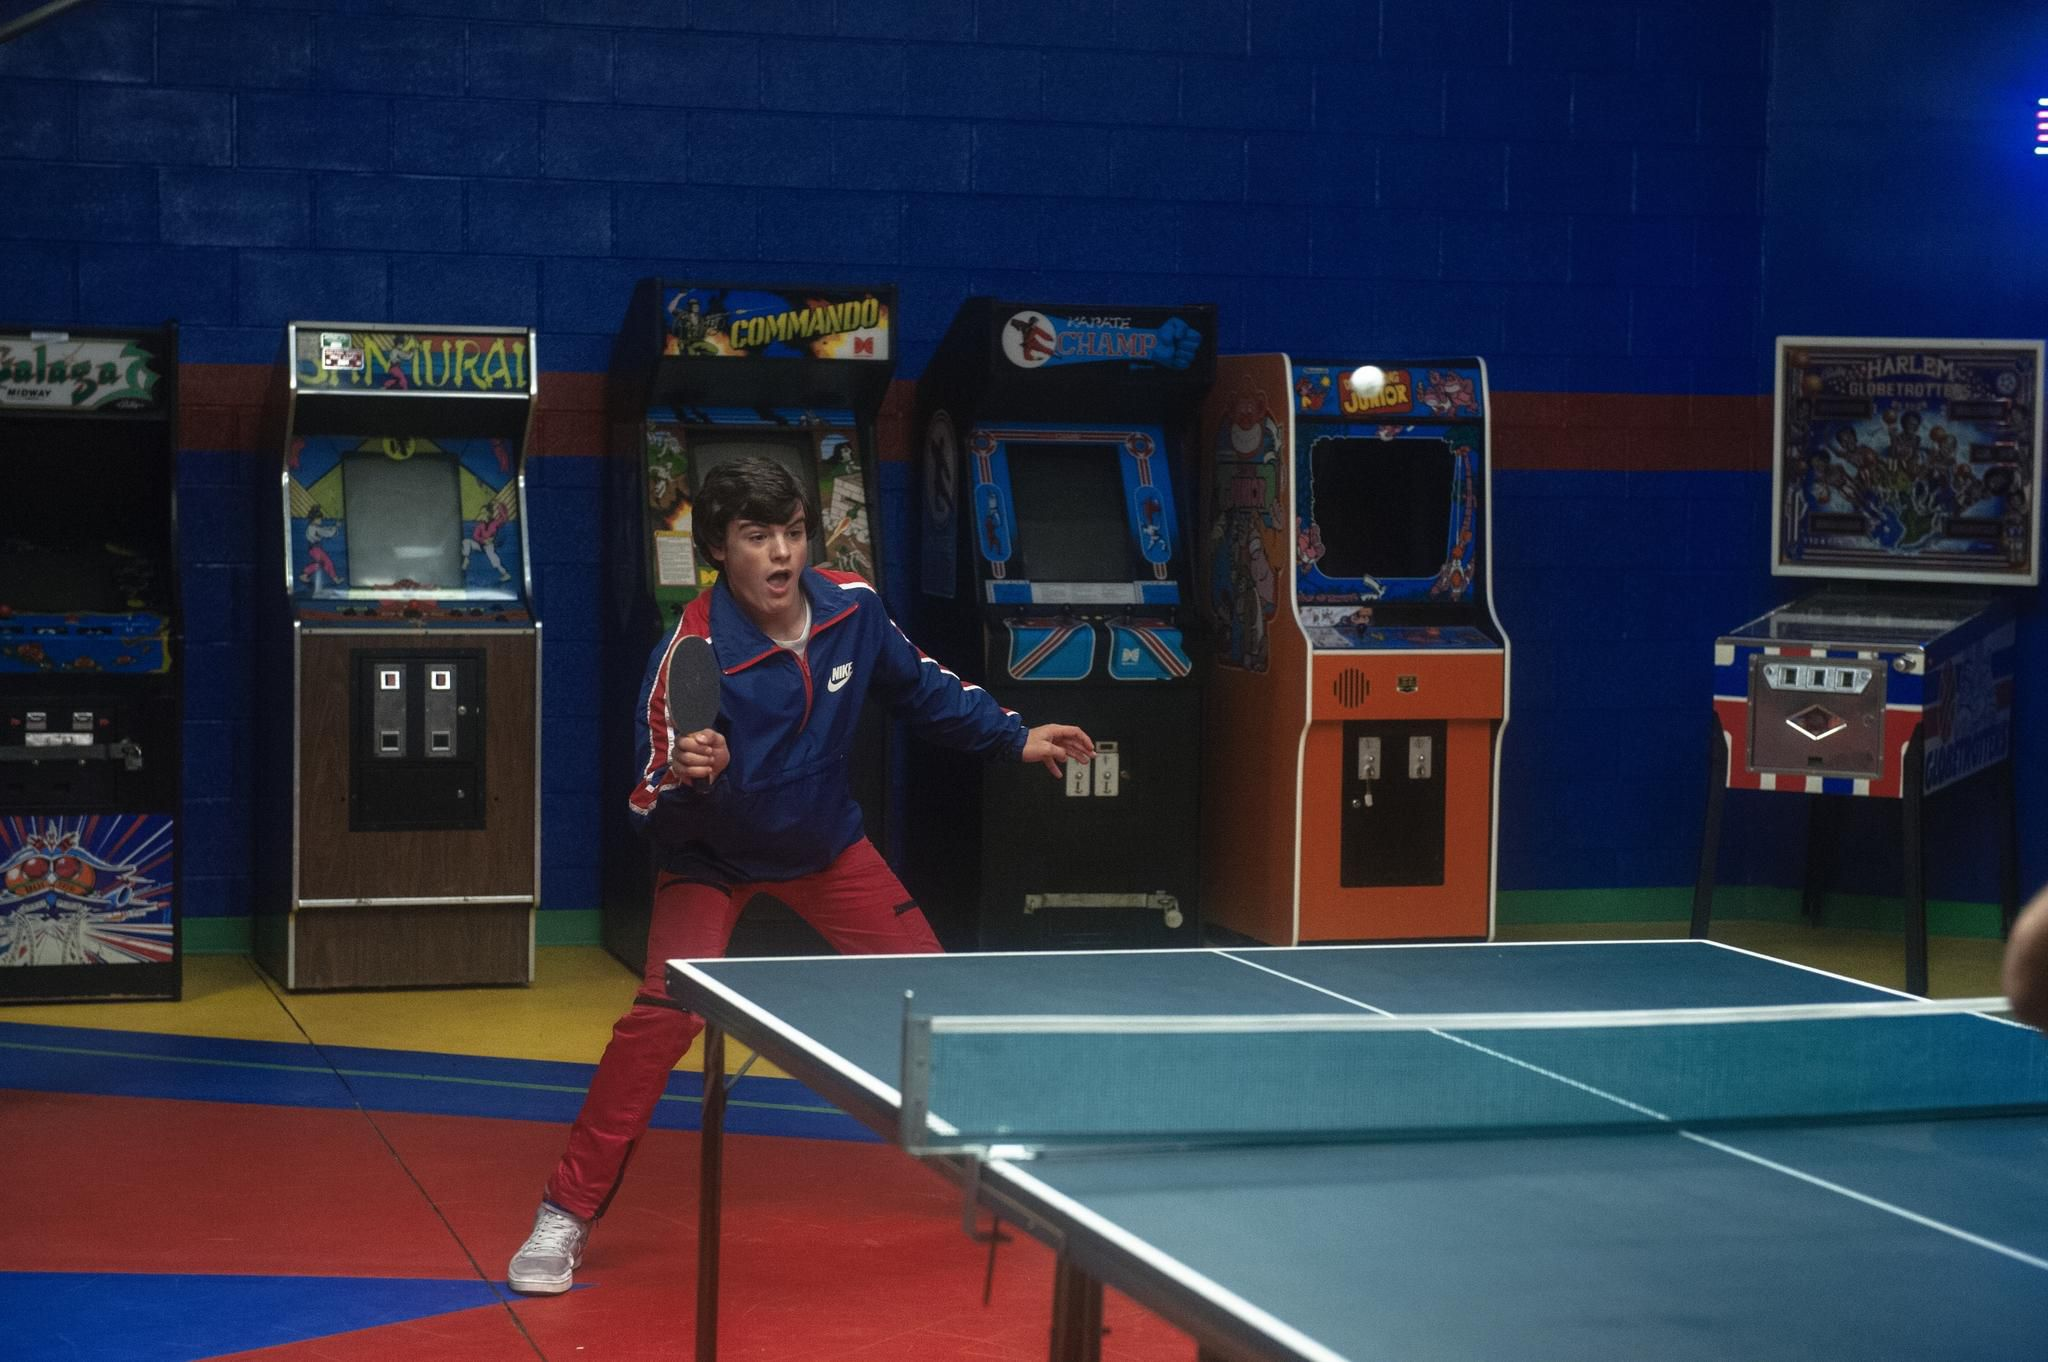 An image from Ping Pong Summer